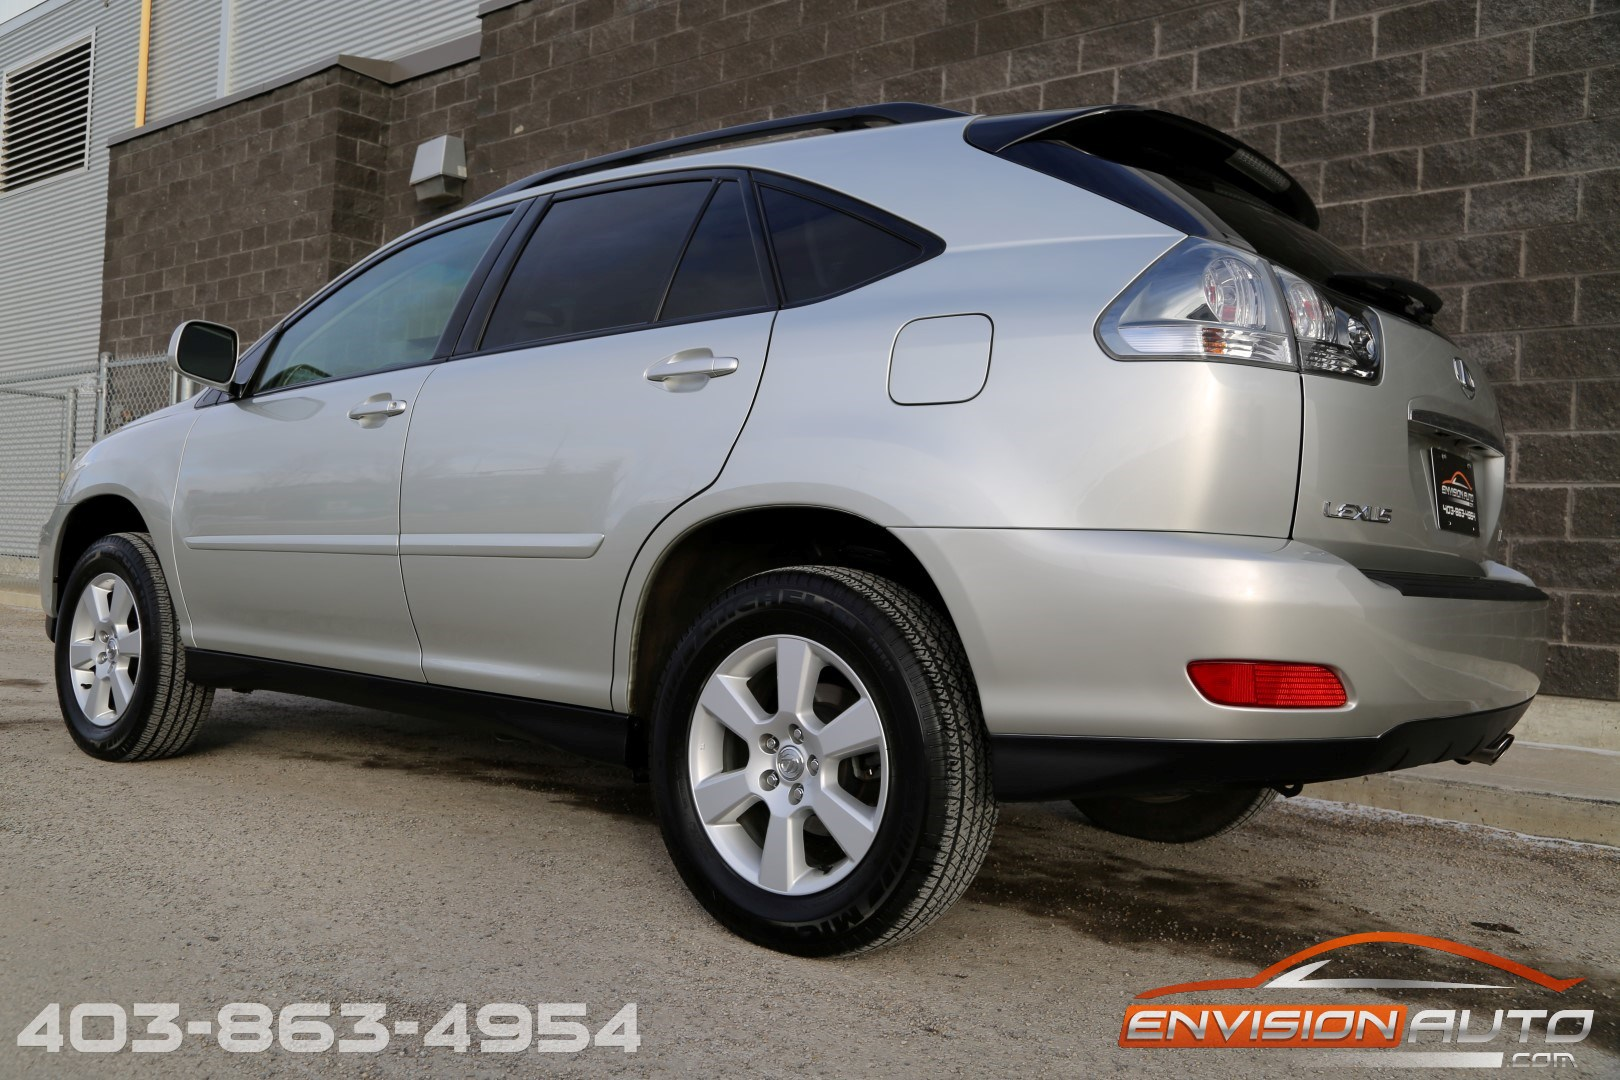 2005 lexus rx330 awd premium envision auto calgary highline luxury sports cars suv specialists. Black Bedroom Furniture Sets. Home Design Ideas